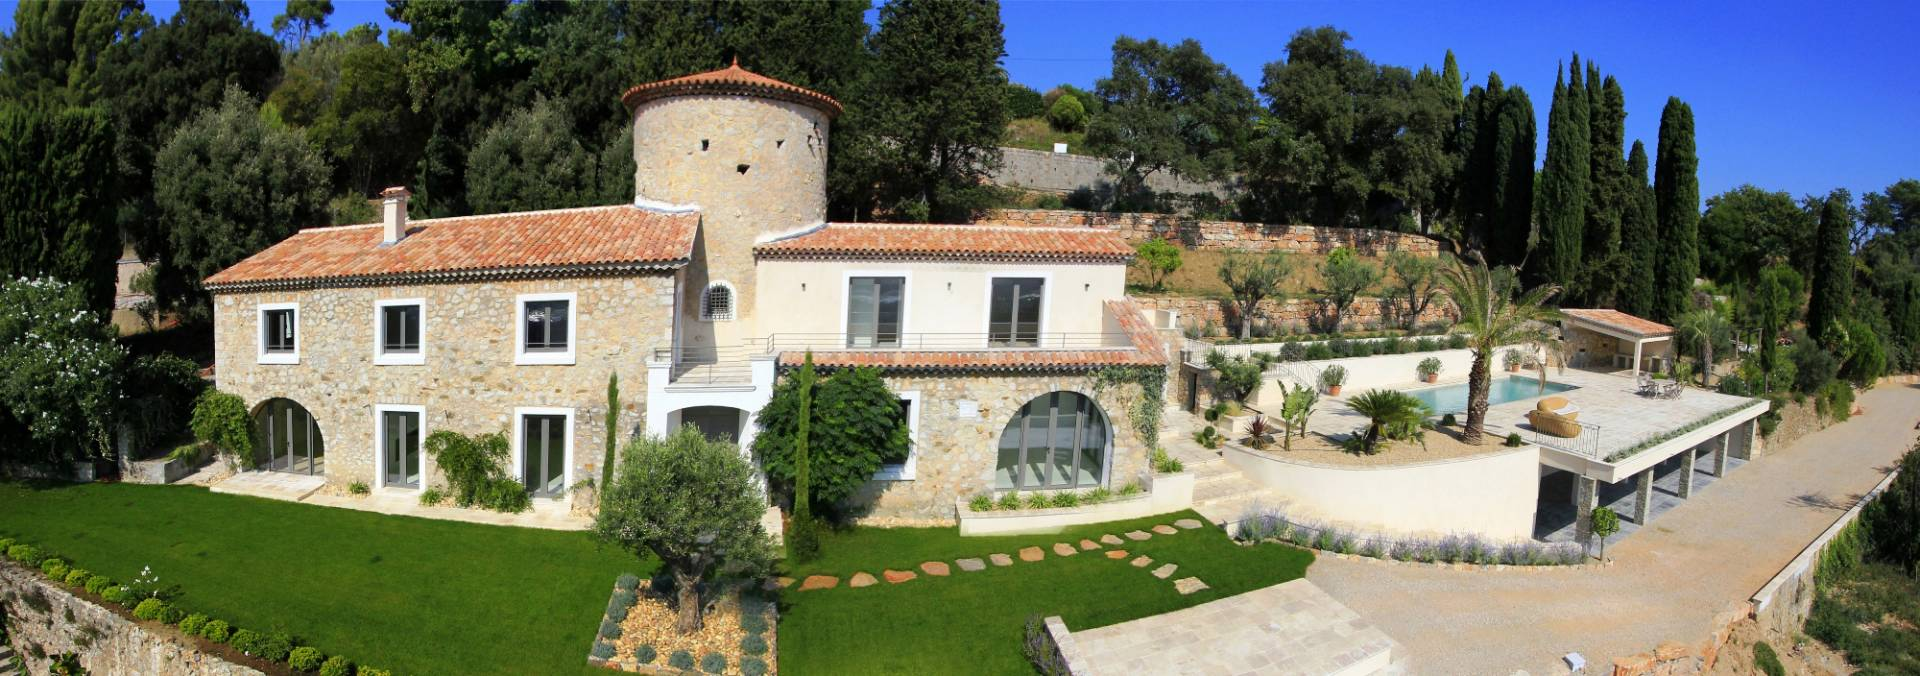 Purchase / sale villa 10 minutes from Cannes